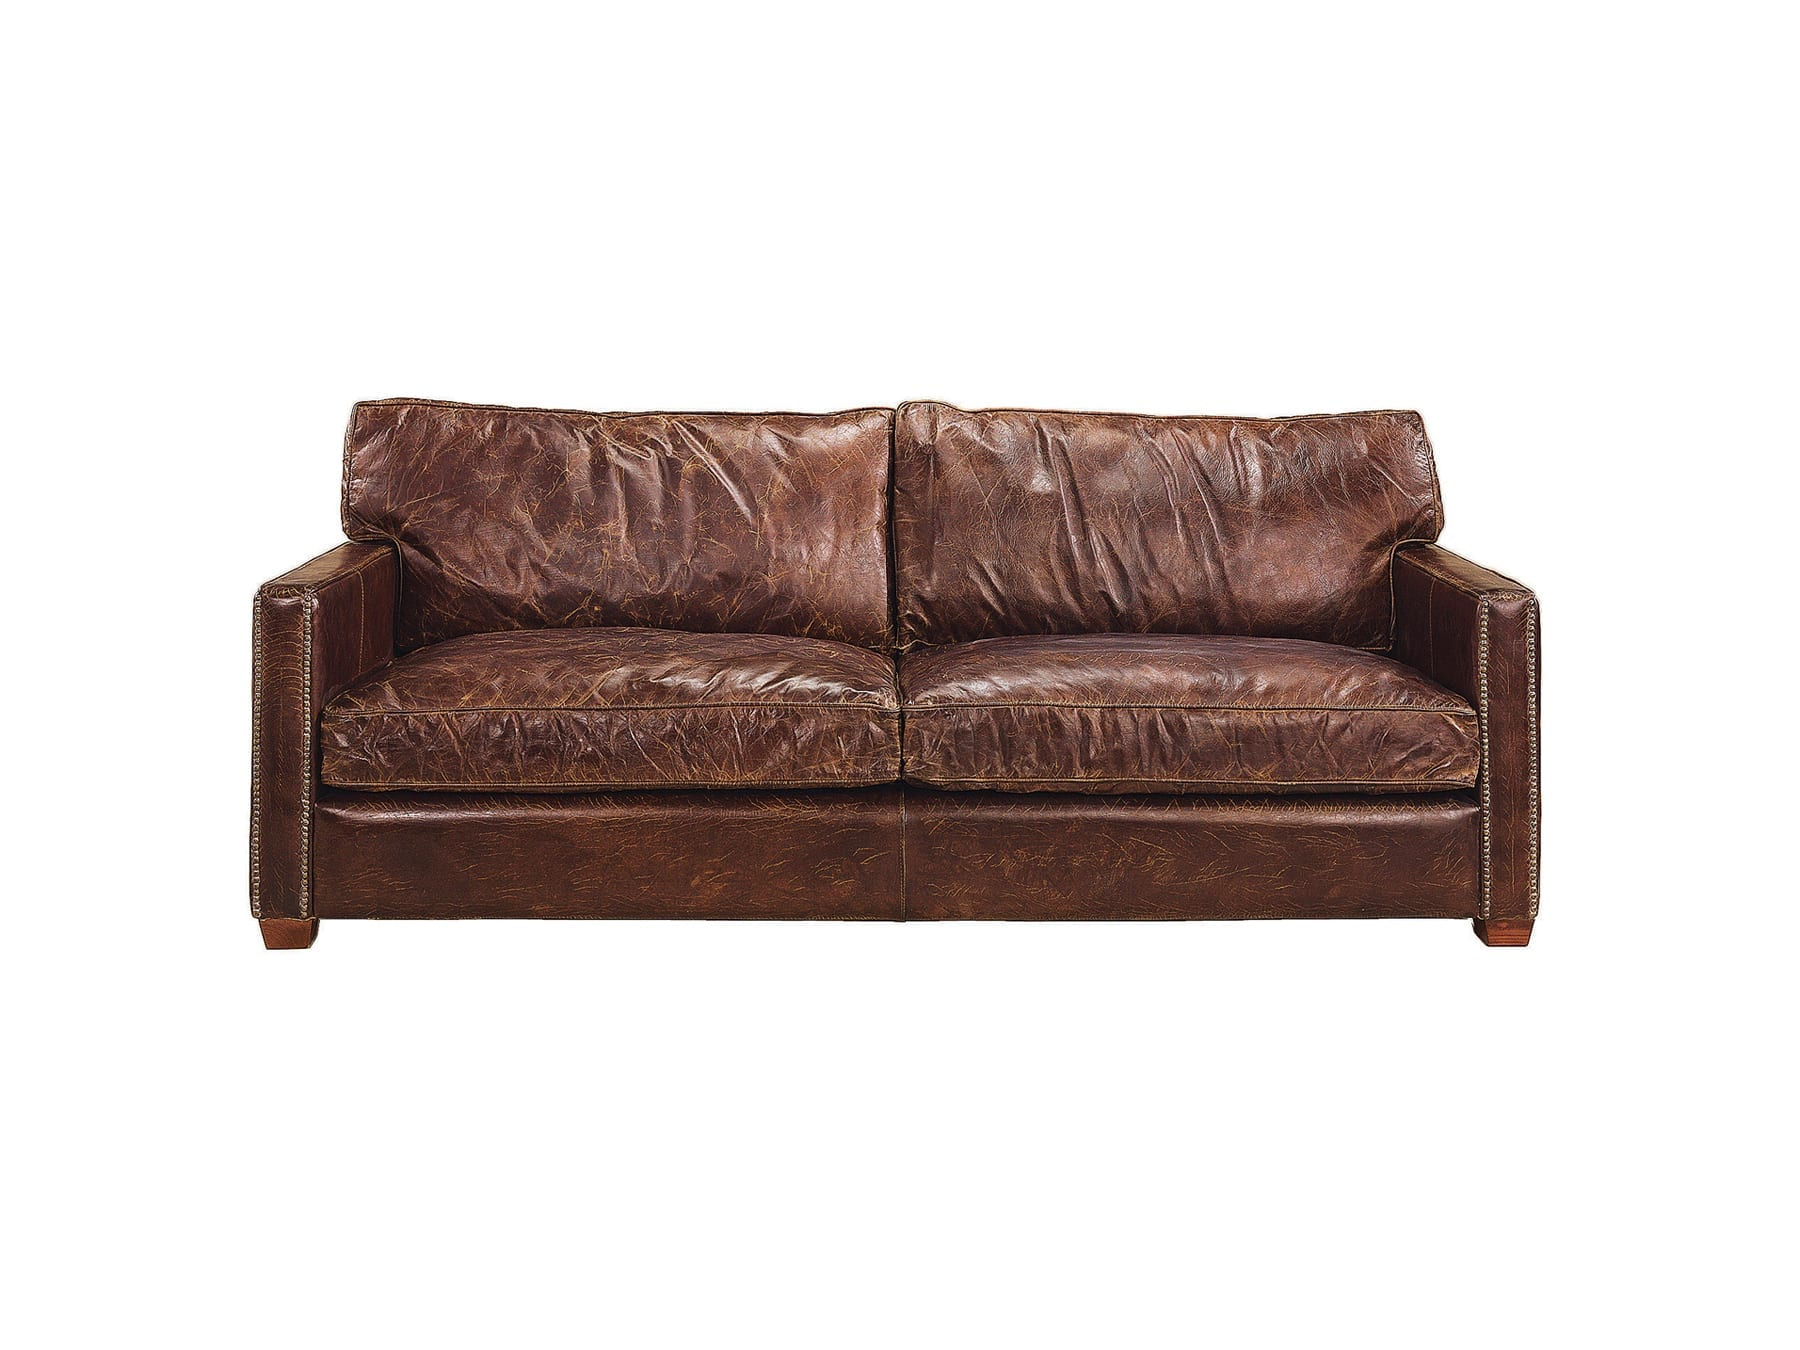 Halo Viscount William Sofa available at McKenzie & Willis